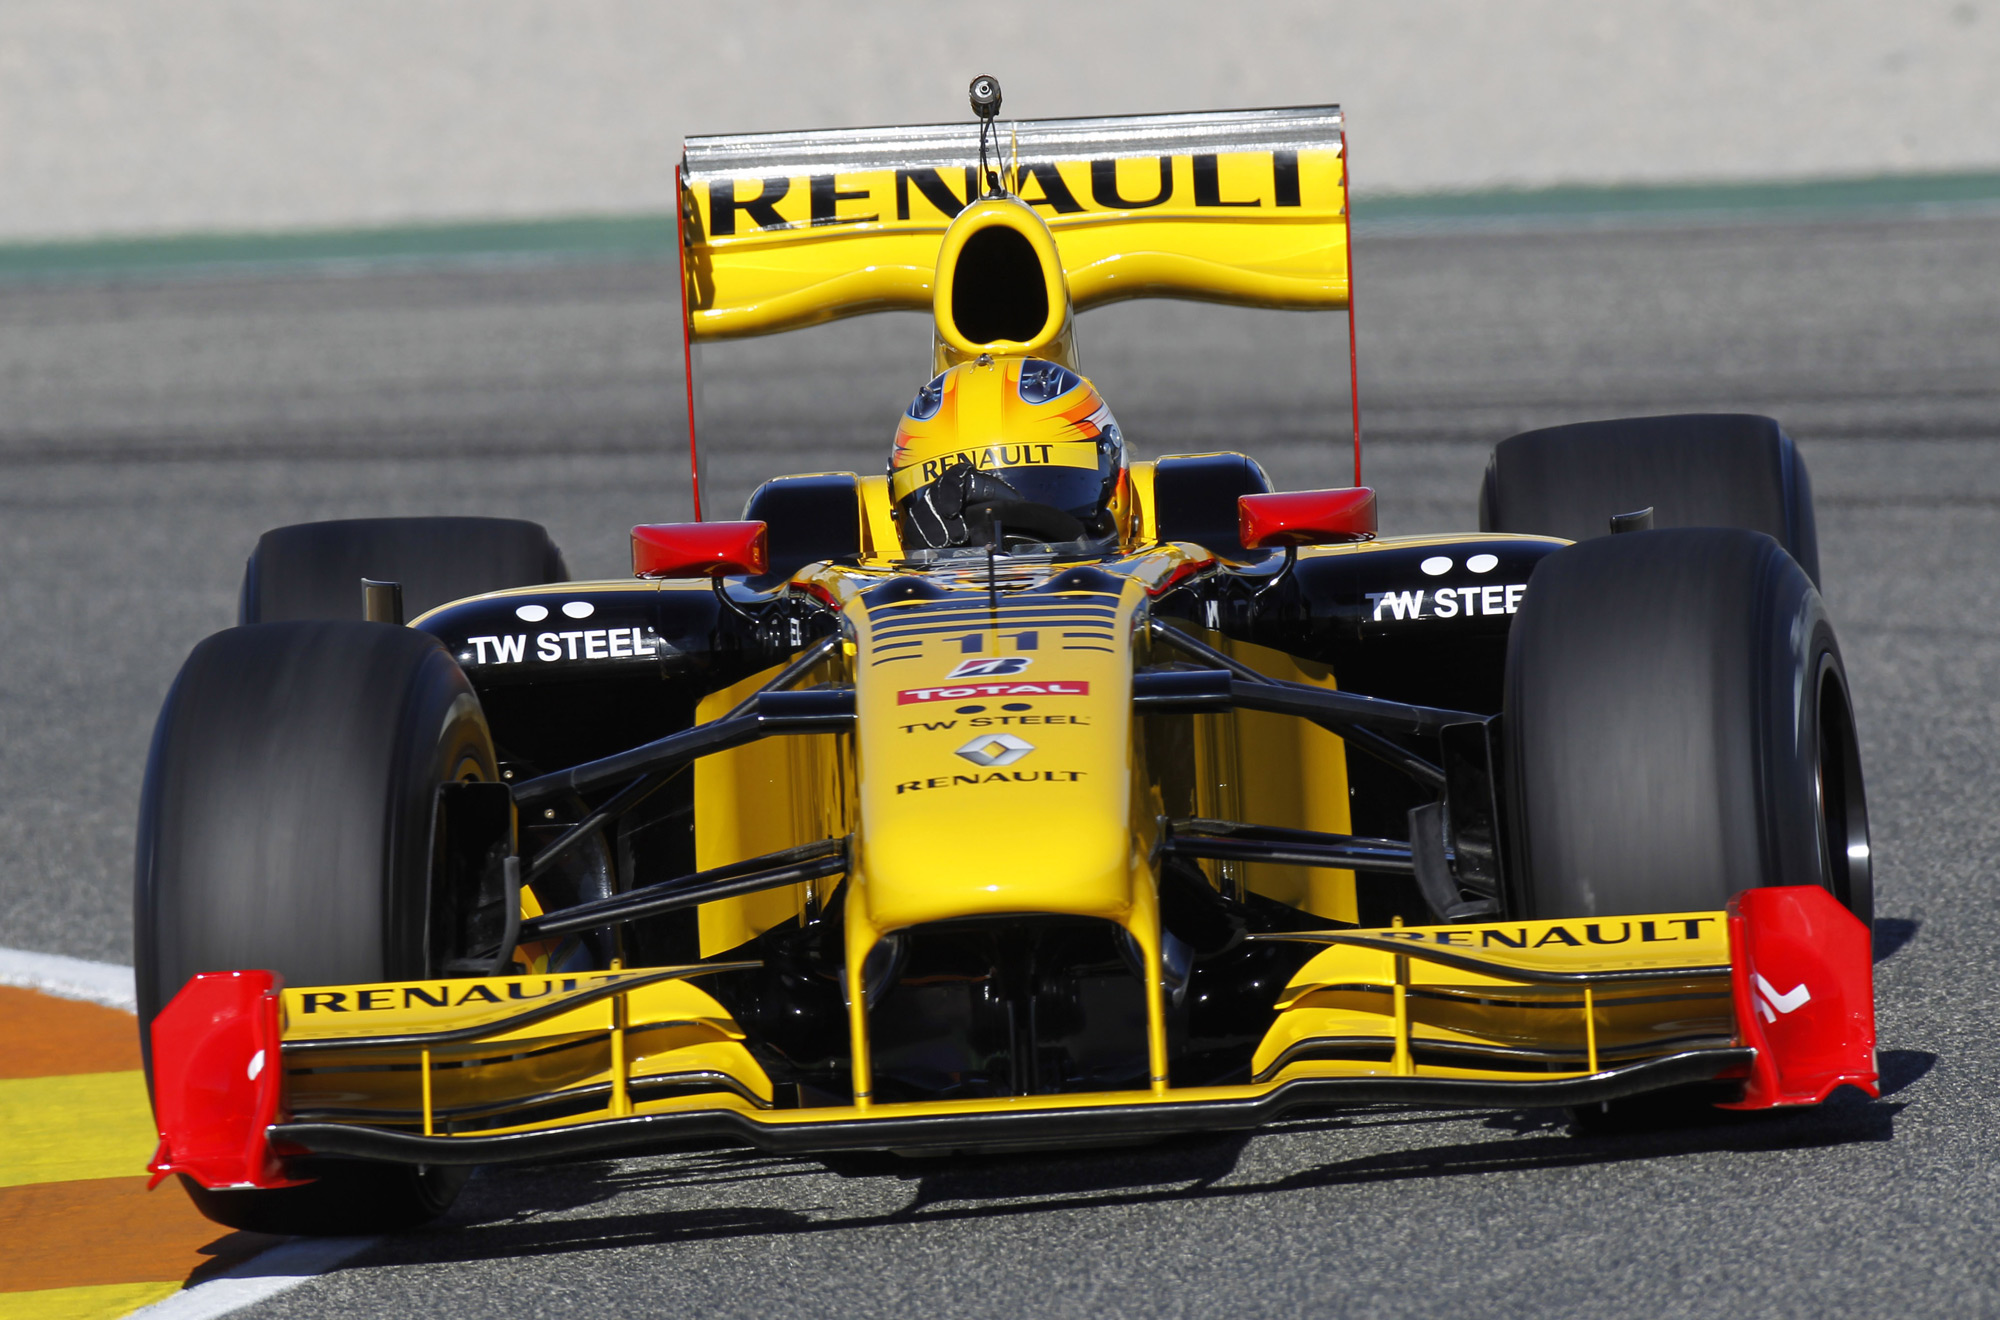 Renault r30 photo - 1